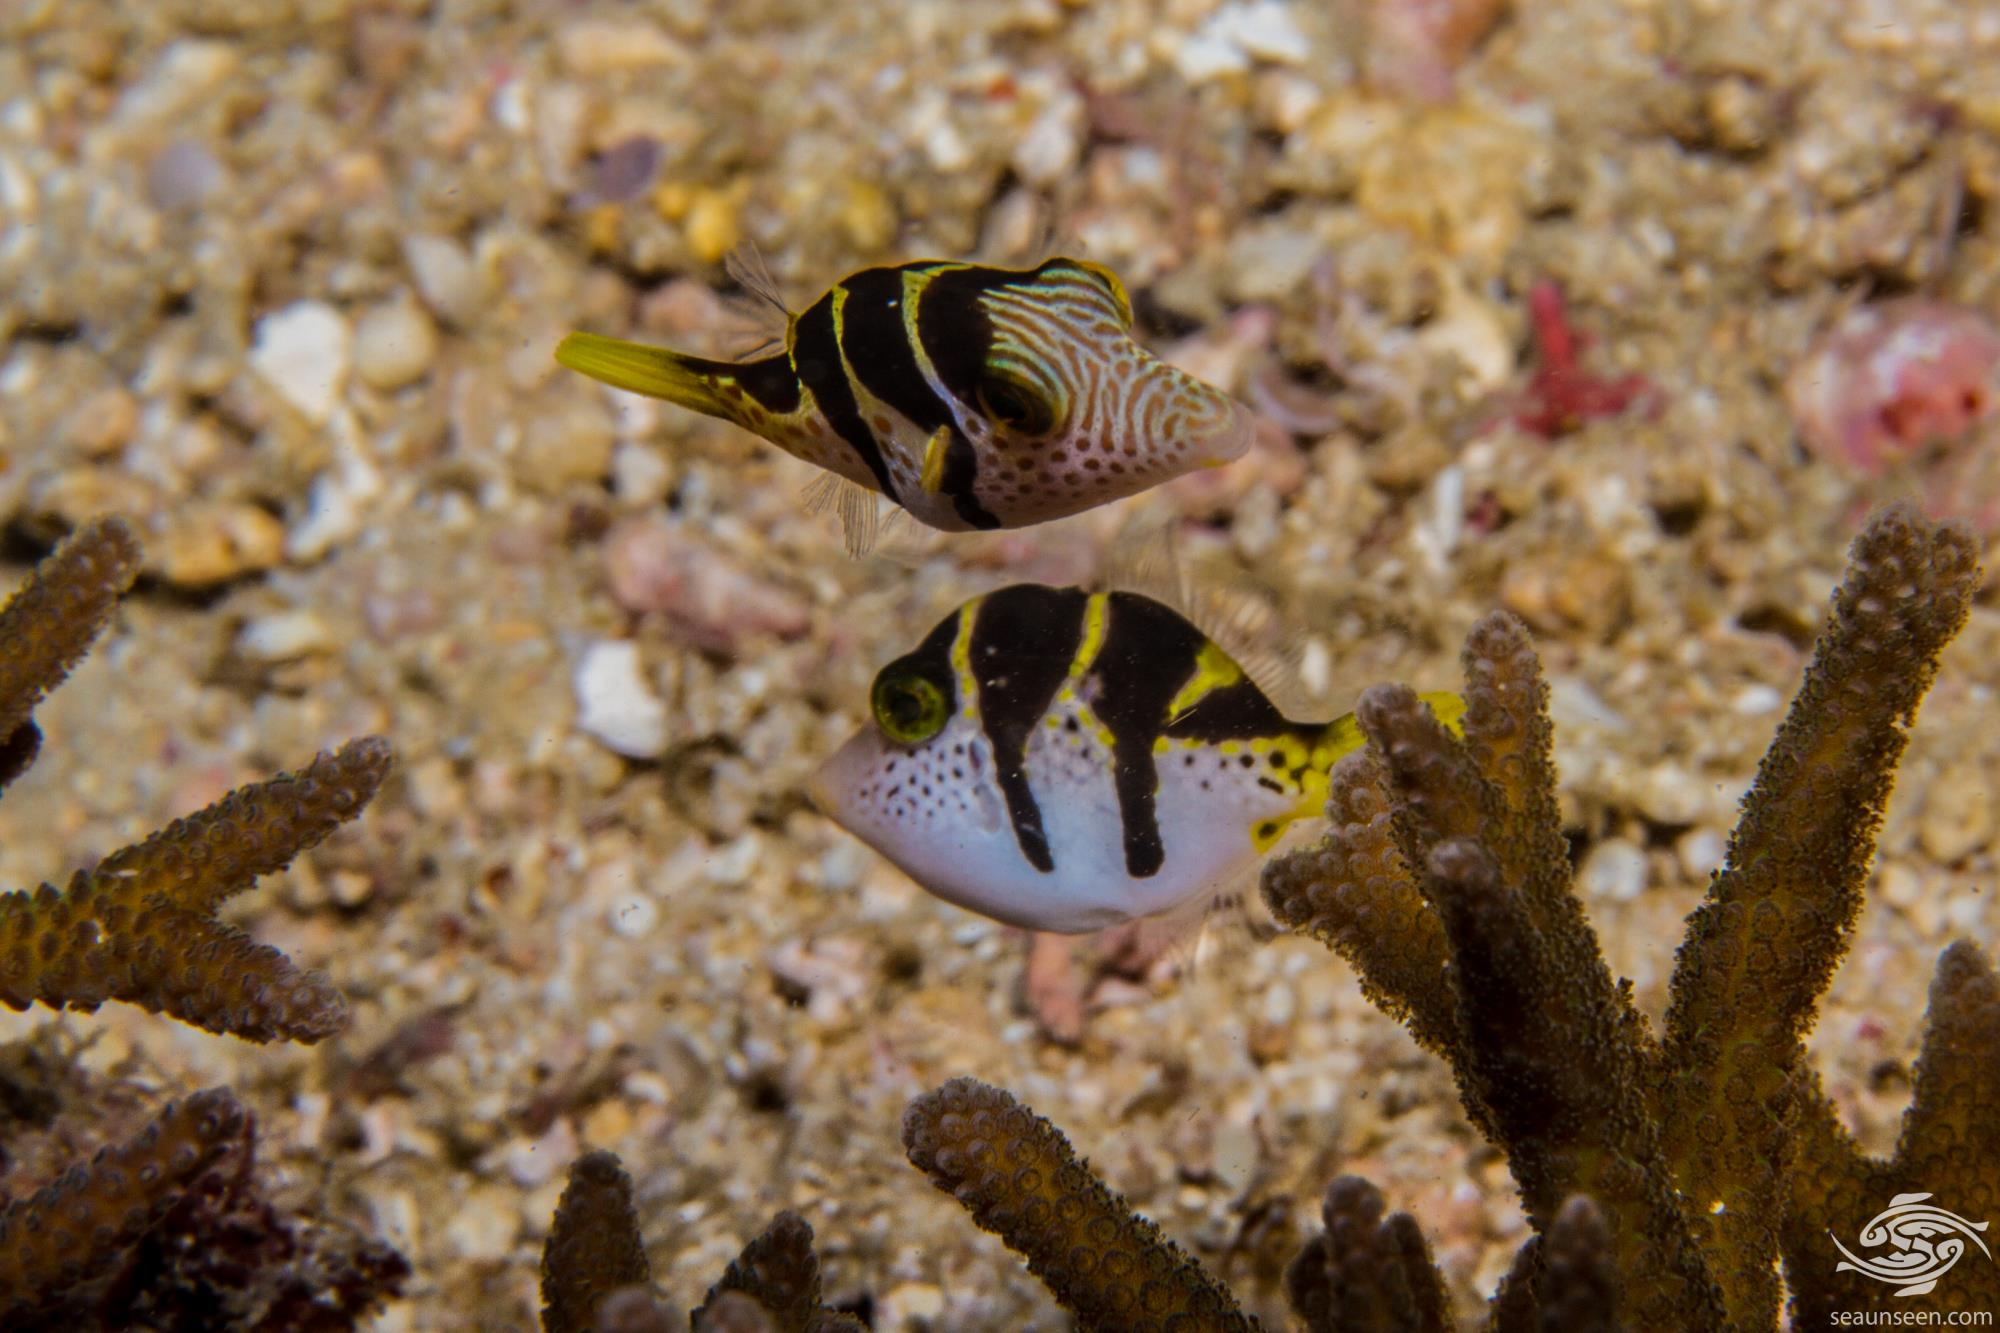 Blacksaddle filefish, Paraluteres prionurus and the Blacksaddle toby Canthigaster valentini.